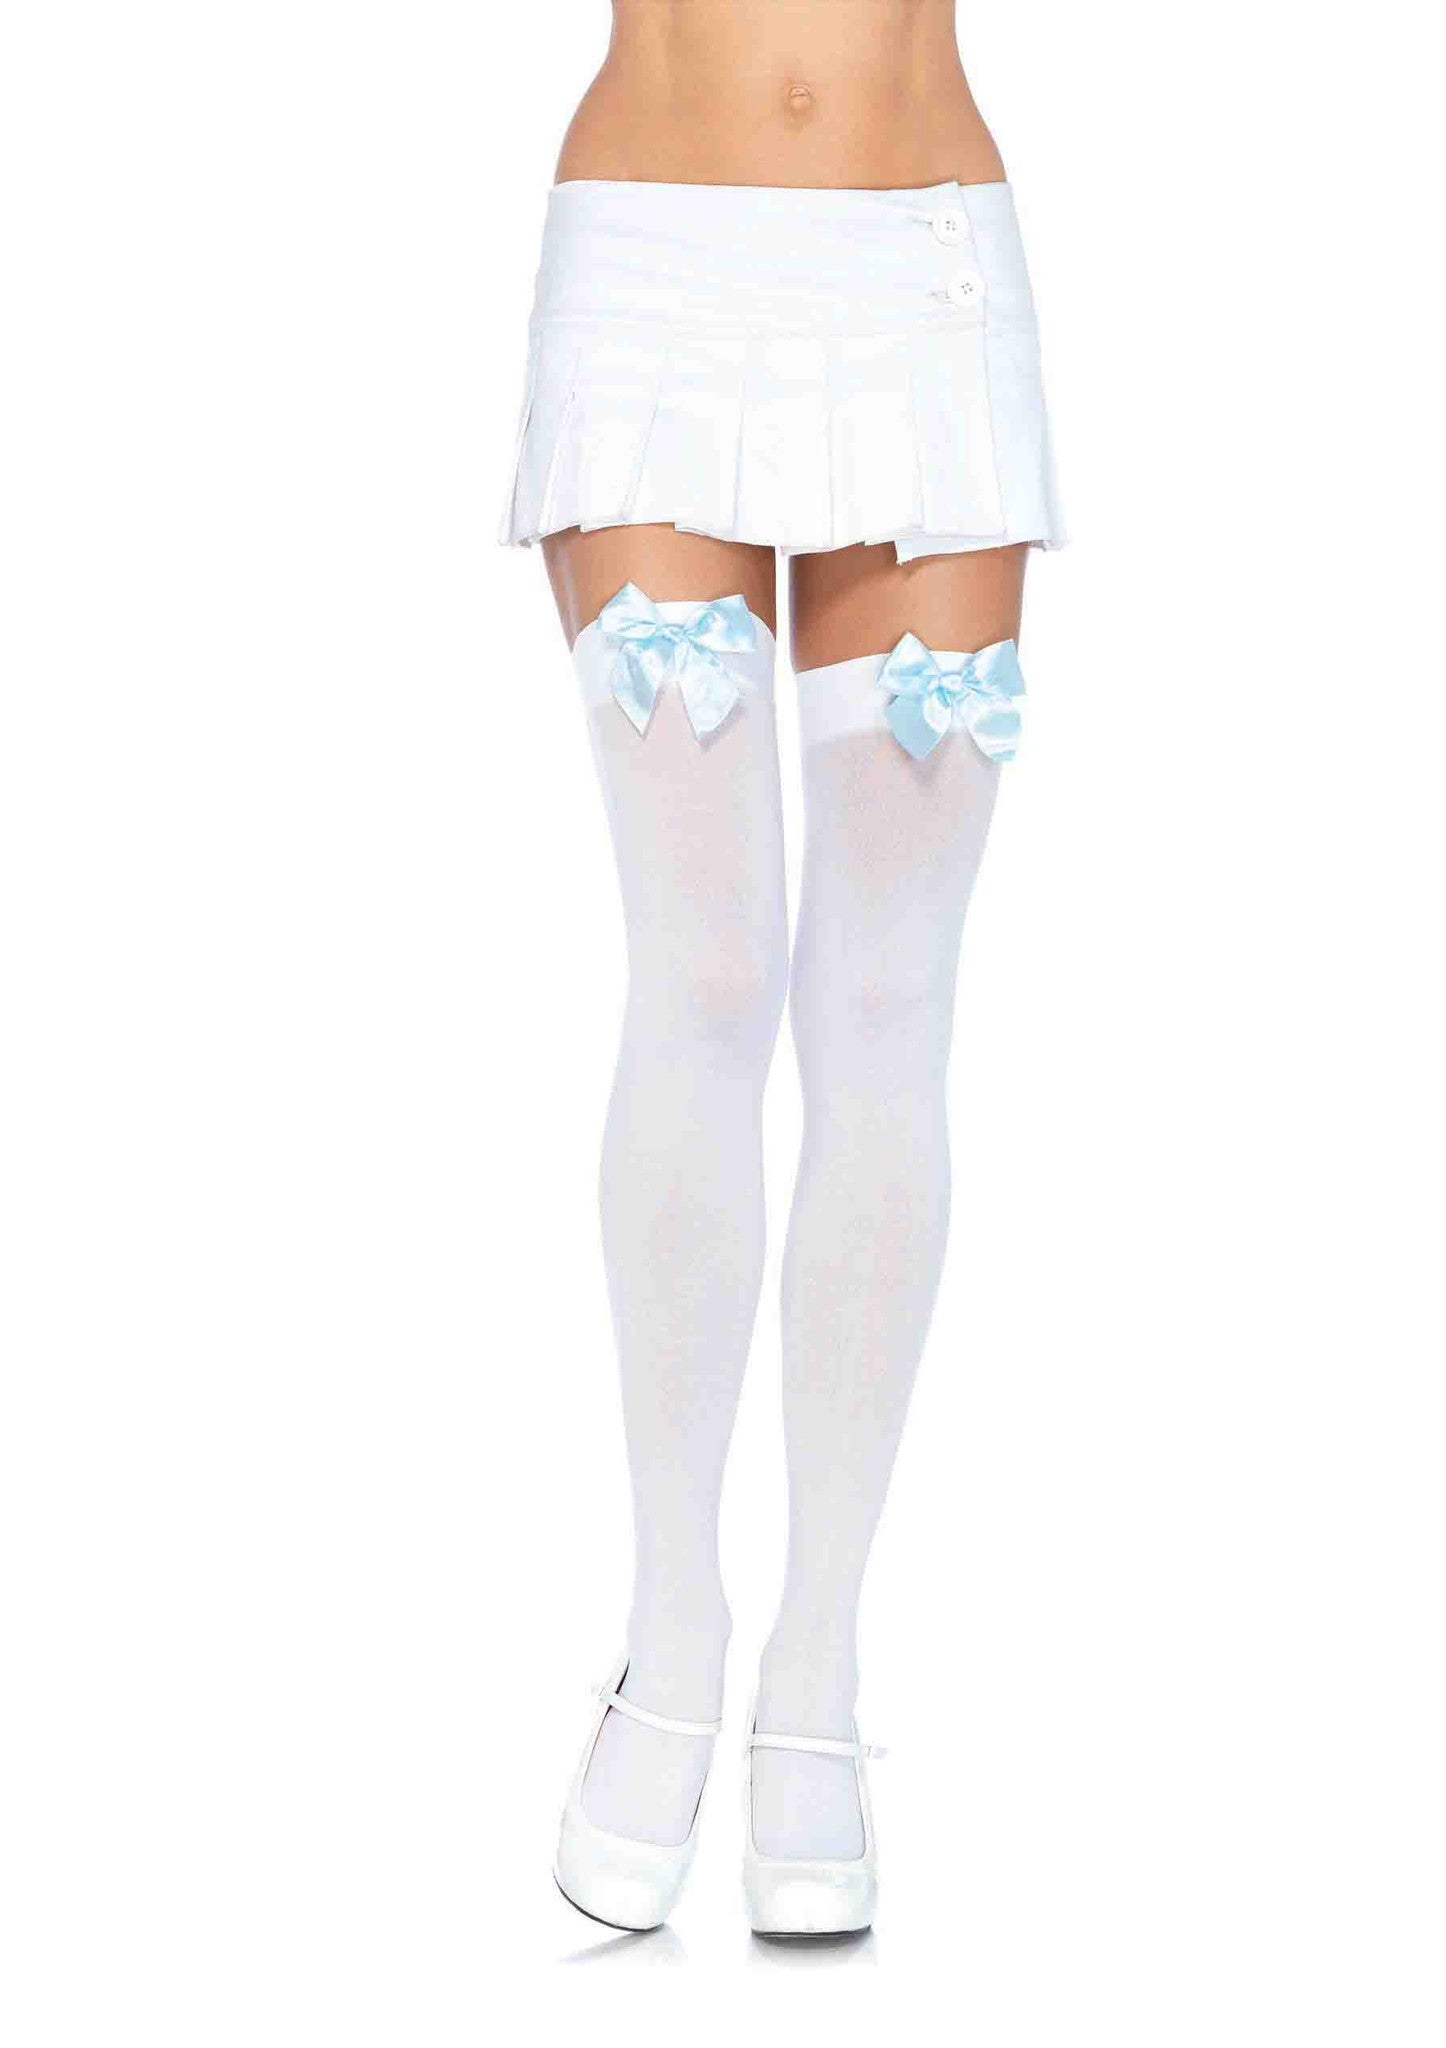 da809ffdc Opaque Thigh Hi w Bow-Wht lt. blue in Accessories from LEGAVENUE. Opaque  Thigh Highs with Satin ...